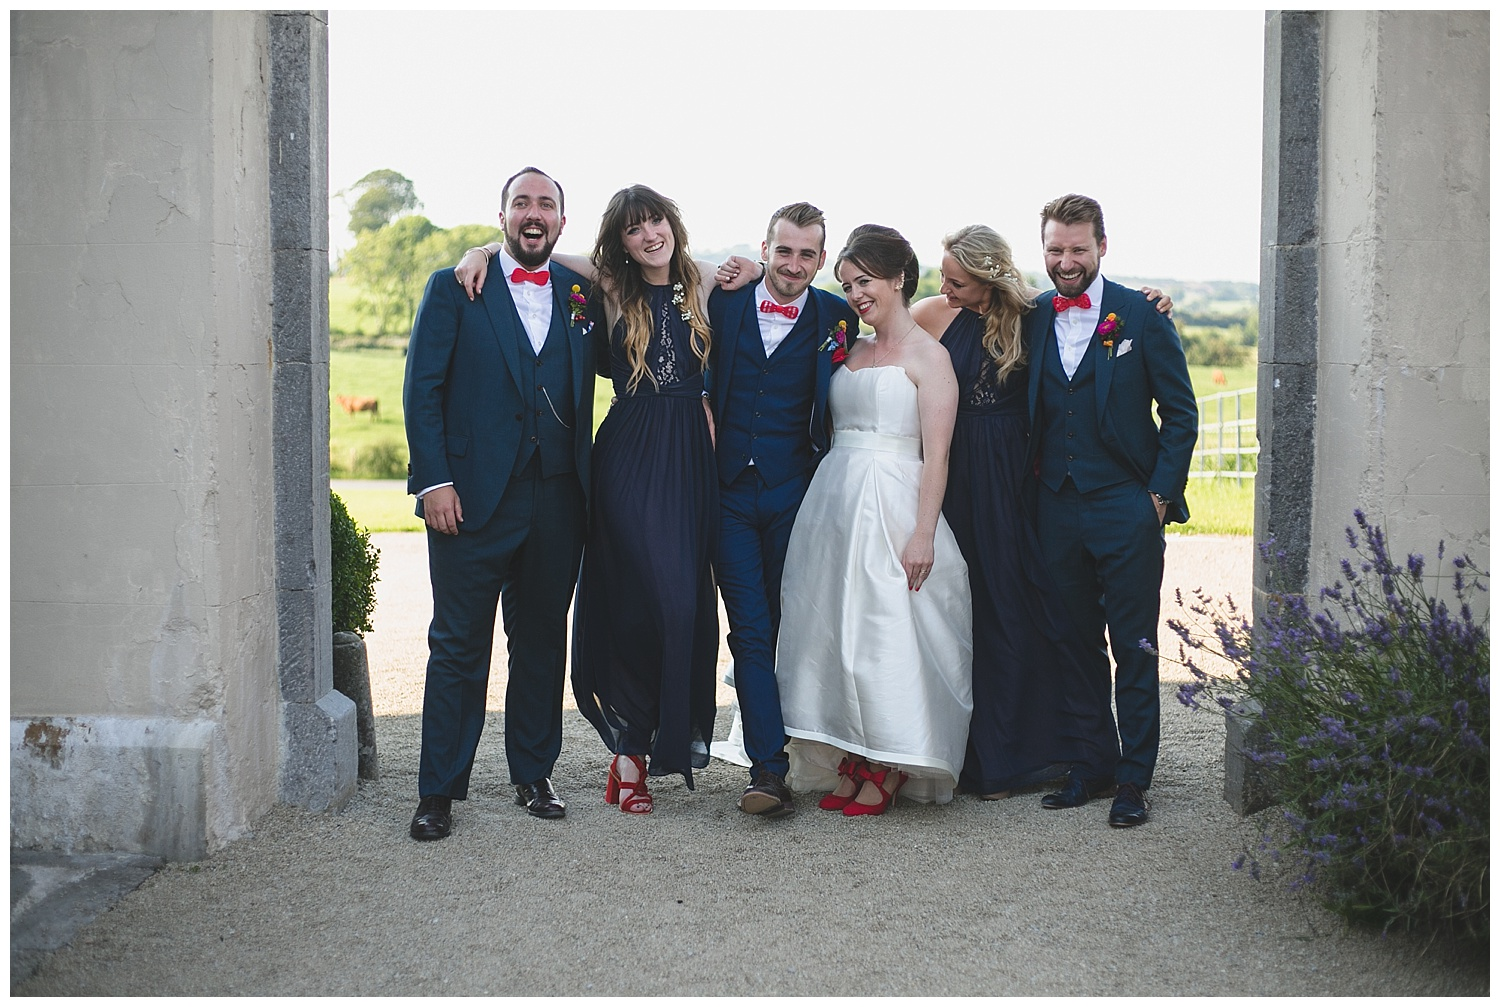 Bridal party portrait under archway at Clonabreany House